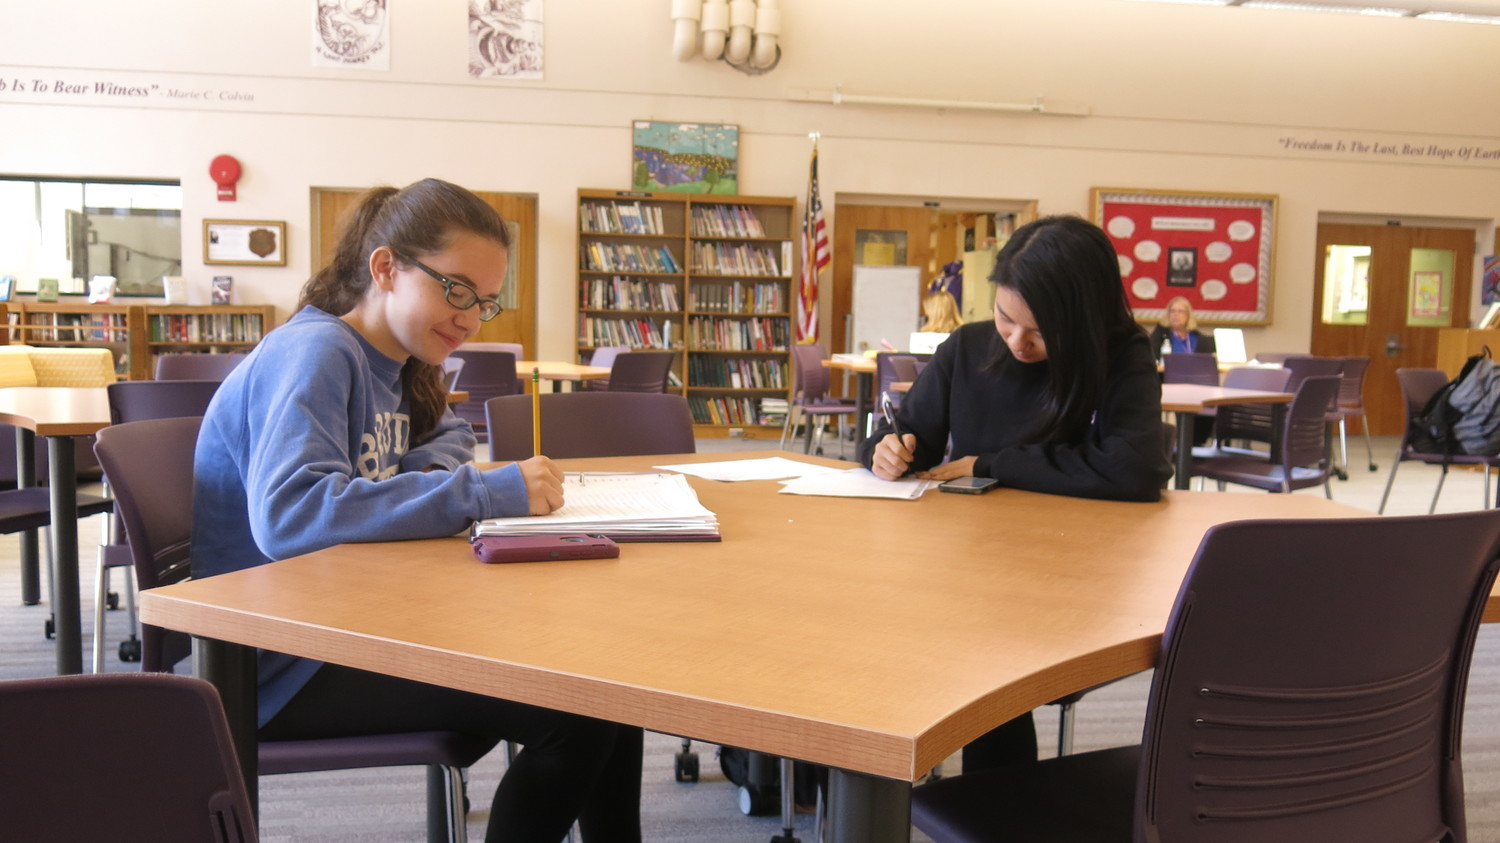 Lindsey Purcell, left, and Joycelin Wong said they liked the new tables in the Oyster Bay High School library because they are more conducive to group work.